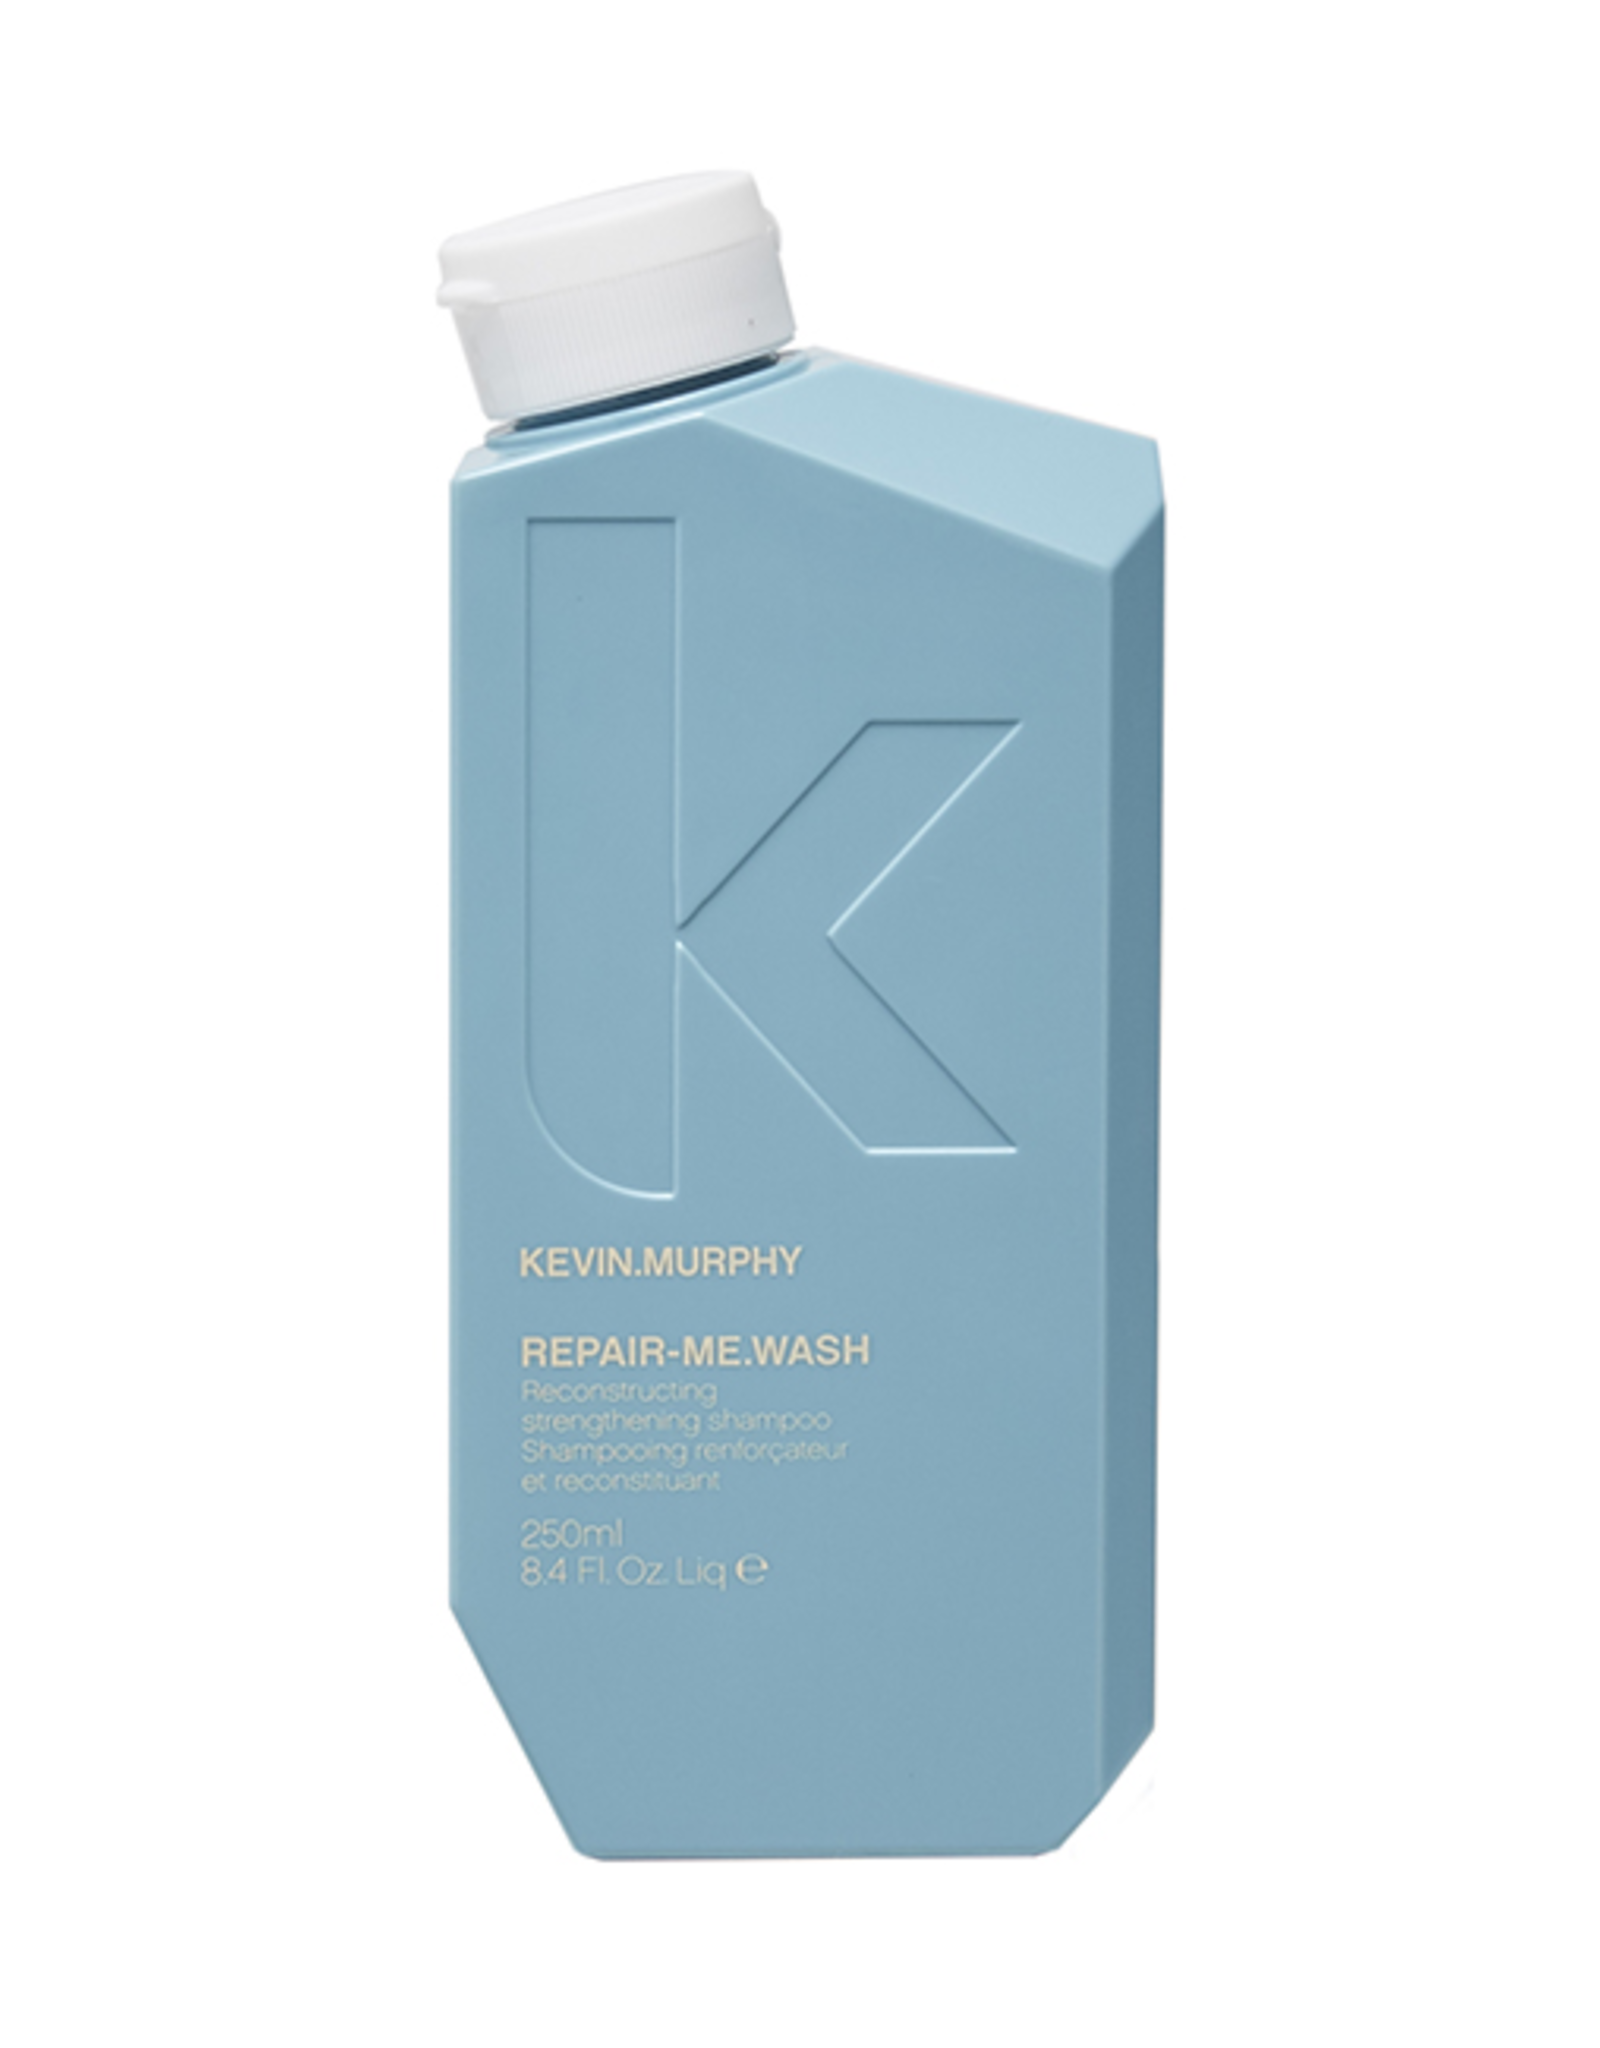 KEVIN.MURPHY Repair-Me.Wash (250 ml)